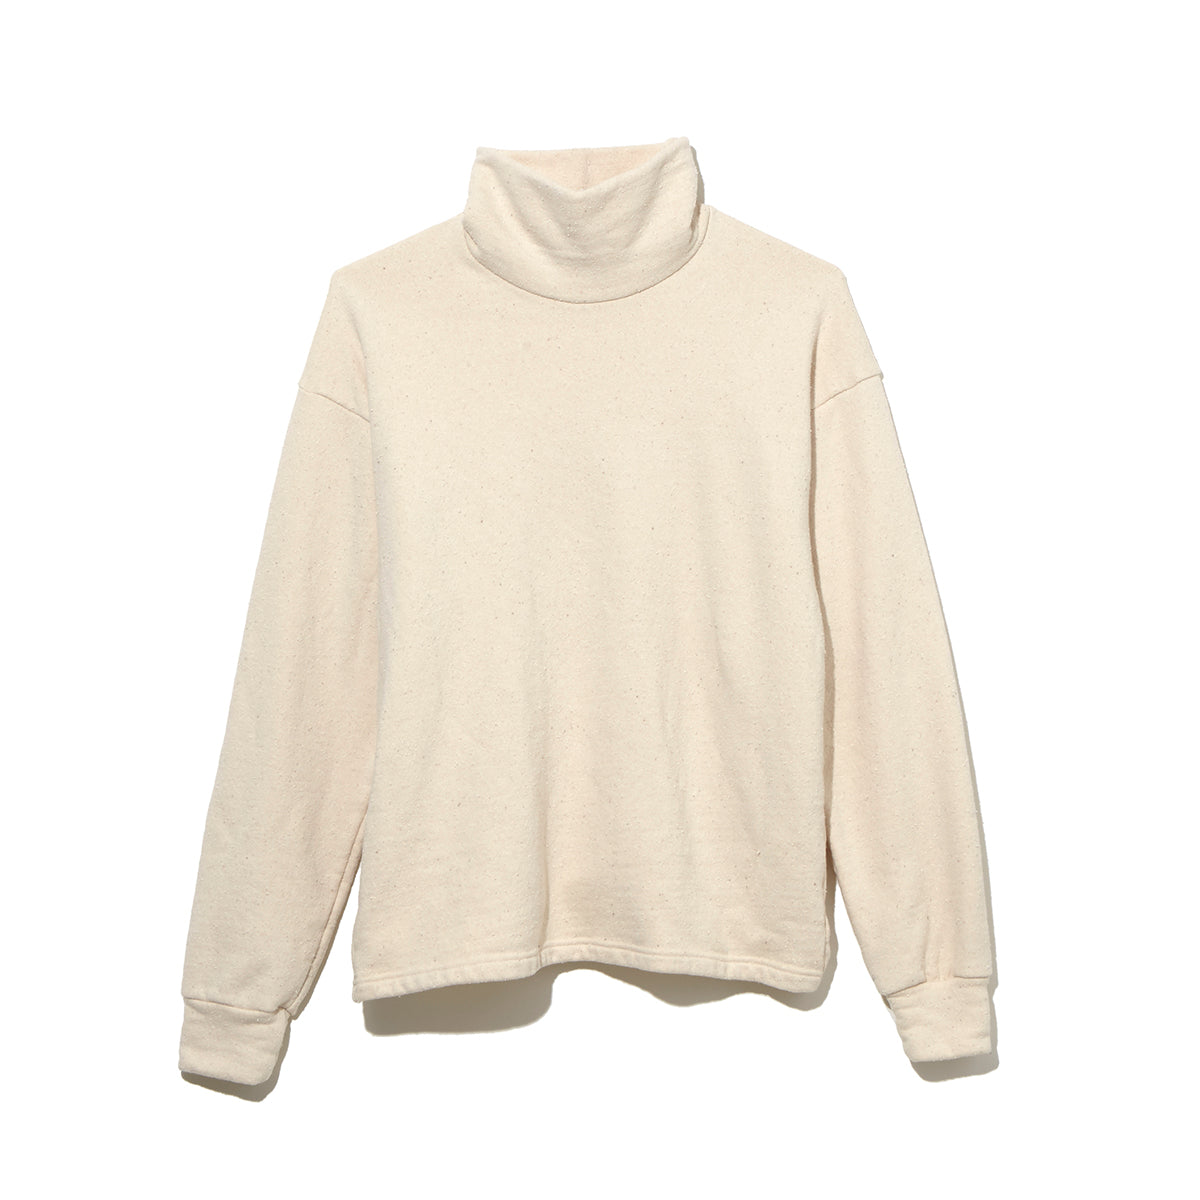 NEP TURTLE NECK / BEIGE (21A-NSA-CS-04)